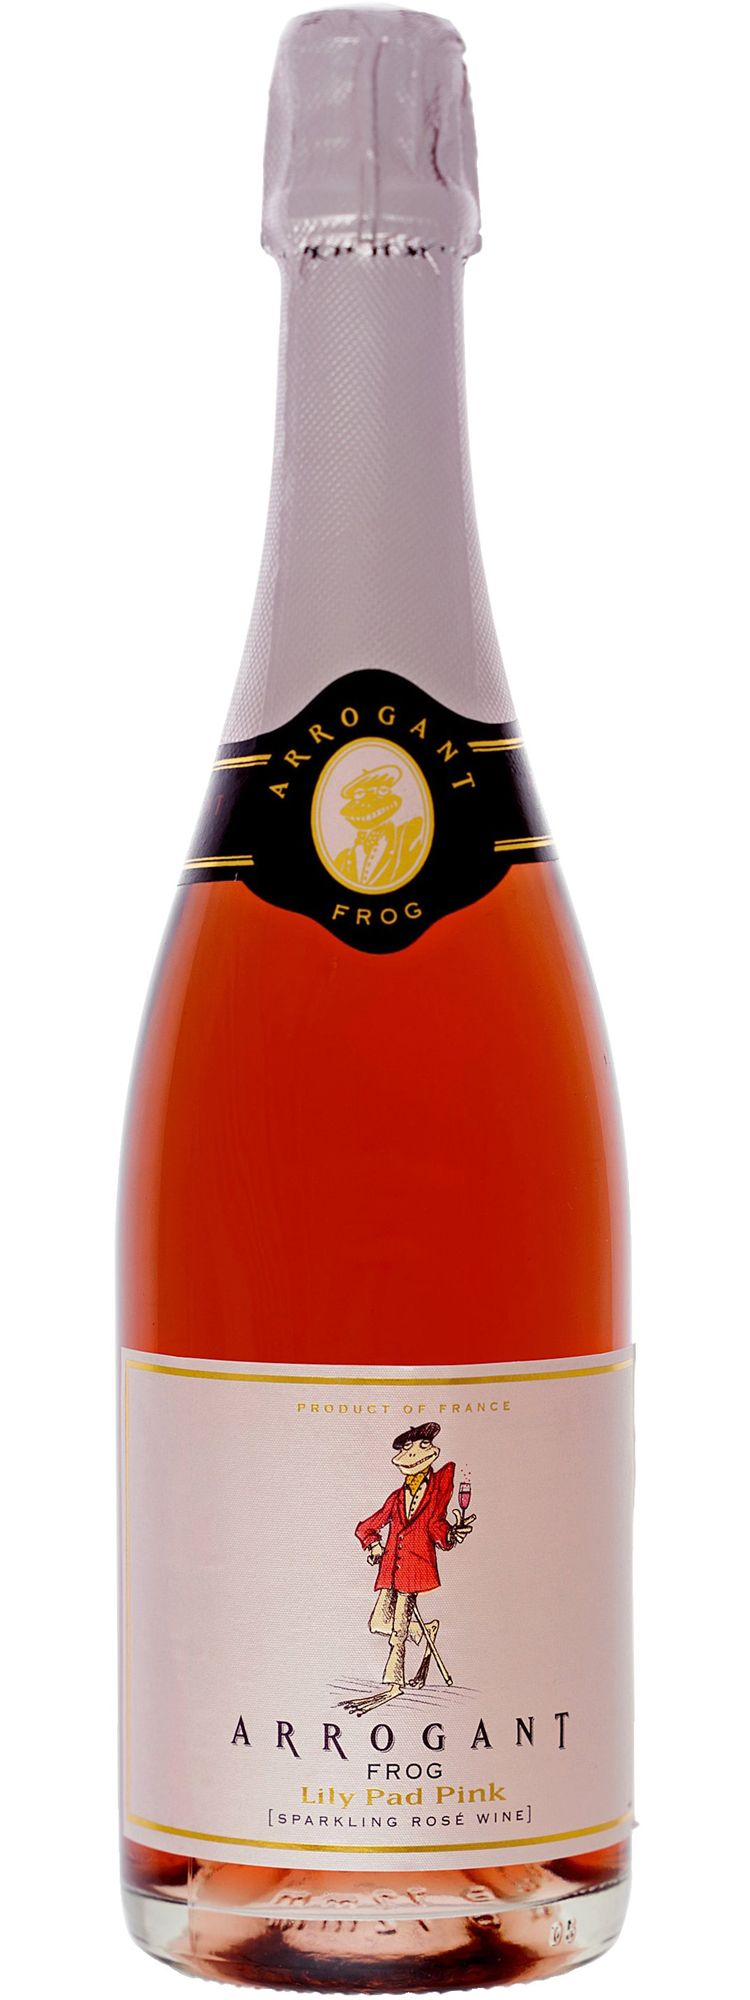 Arrogant Frog Lily Pad Sparkling Rose One Of The Best And Great Value Too Lily Pads Champagne Bottle Wine Bottle